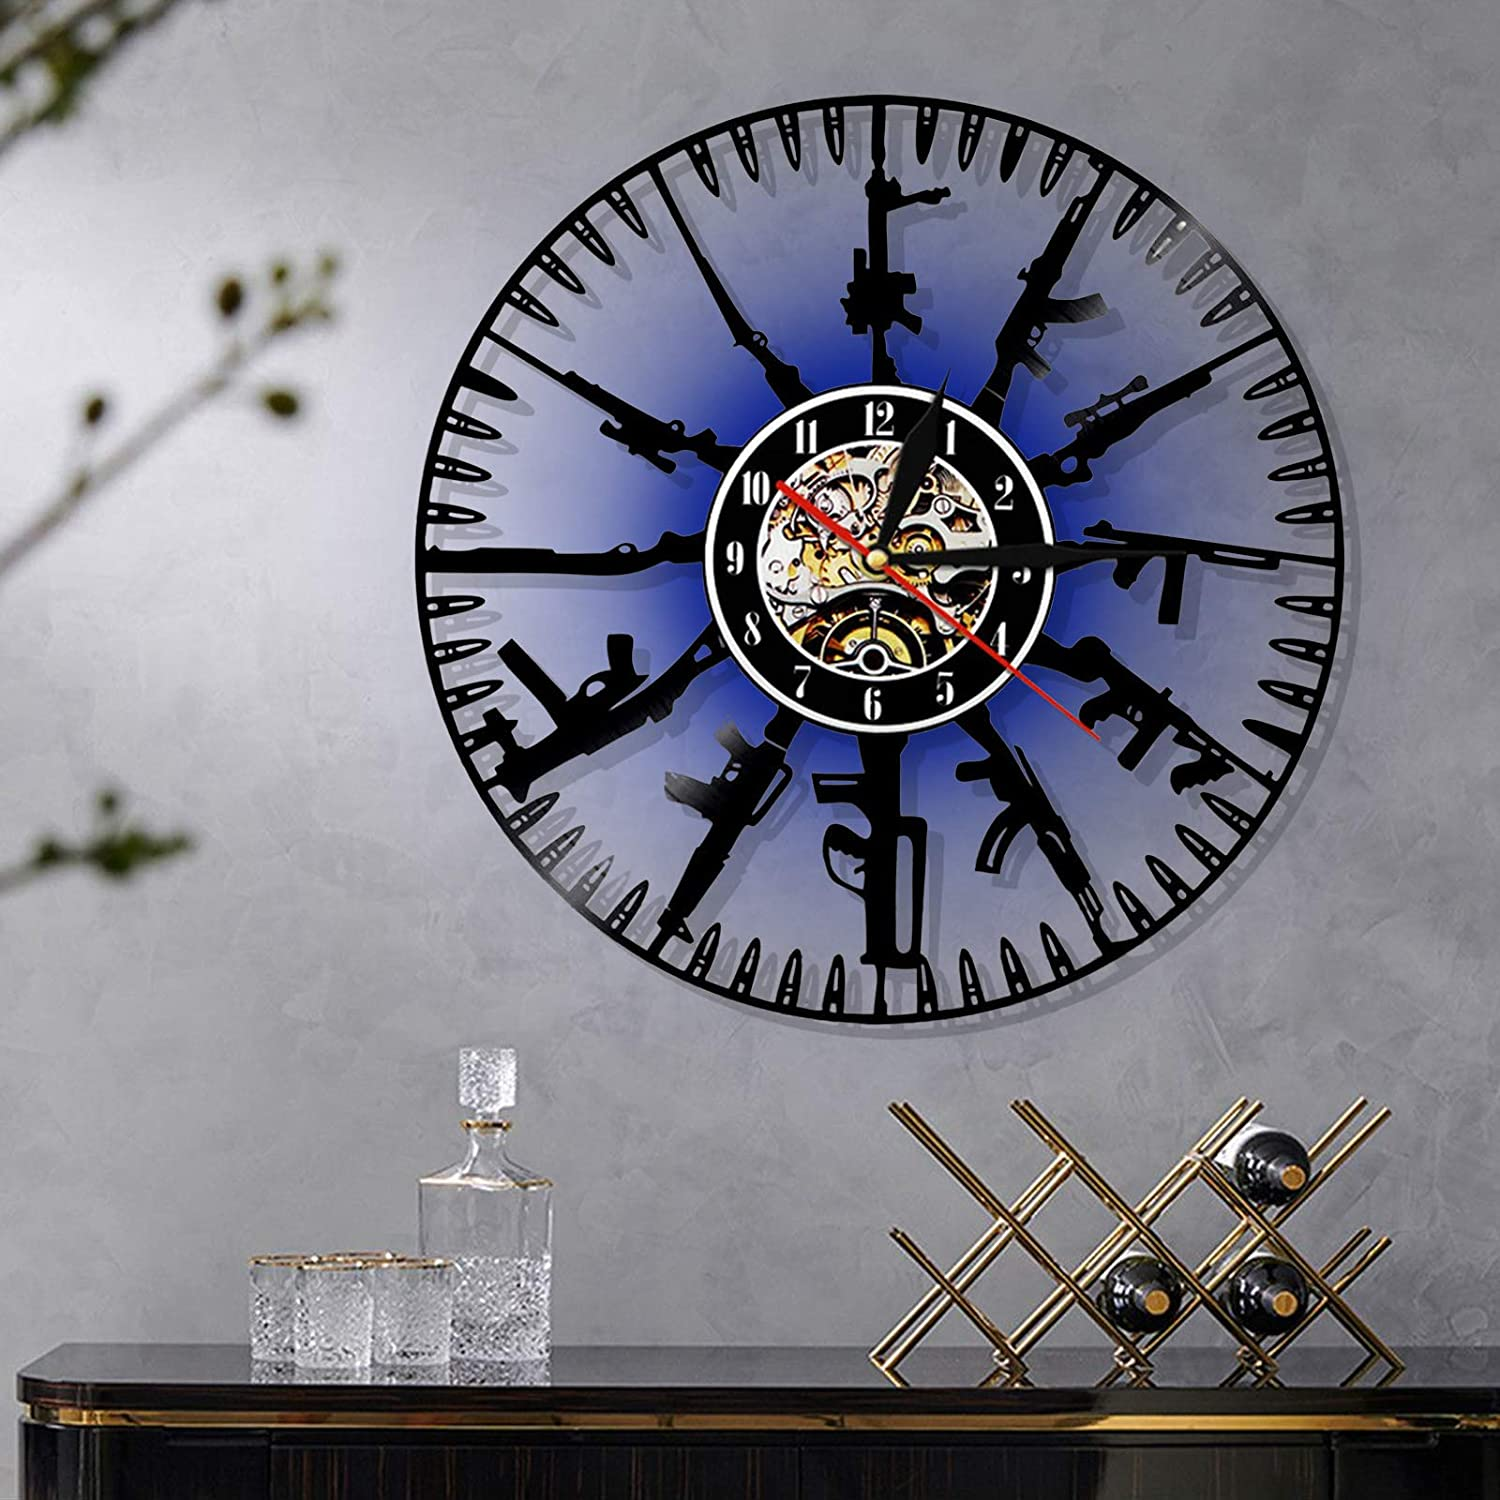 Max 60% OFF 12 Inches Bullet Time Wall Charlotte Mall Upthehill Re Clock Vinyl